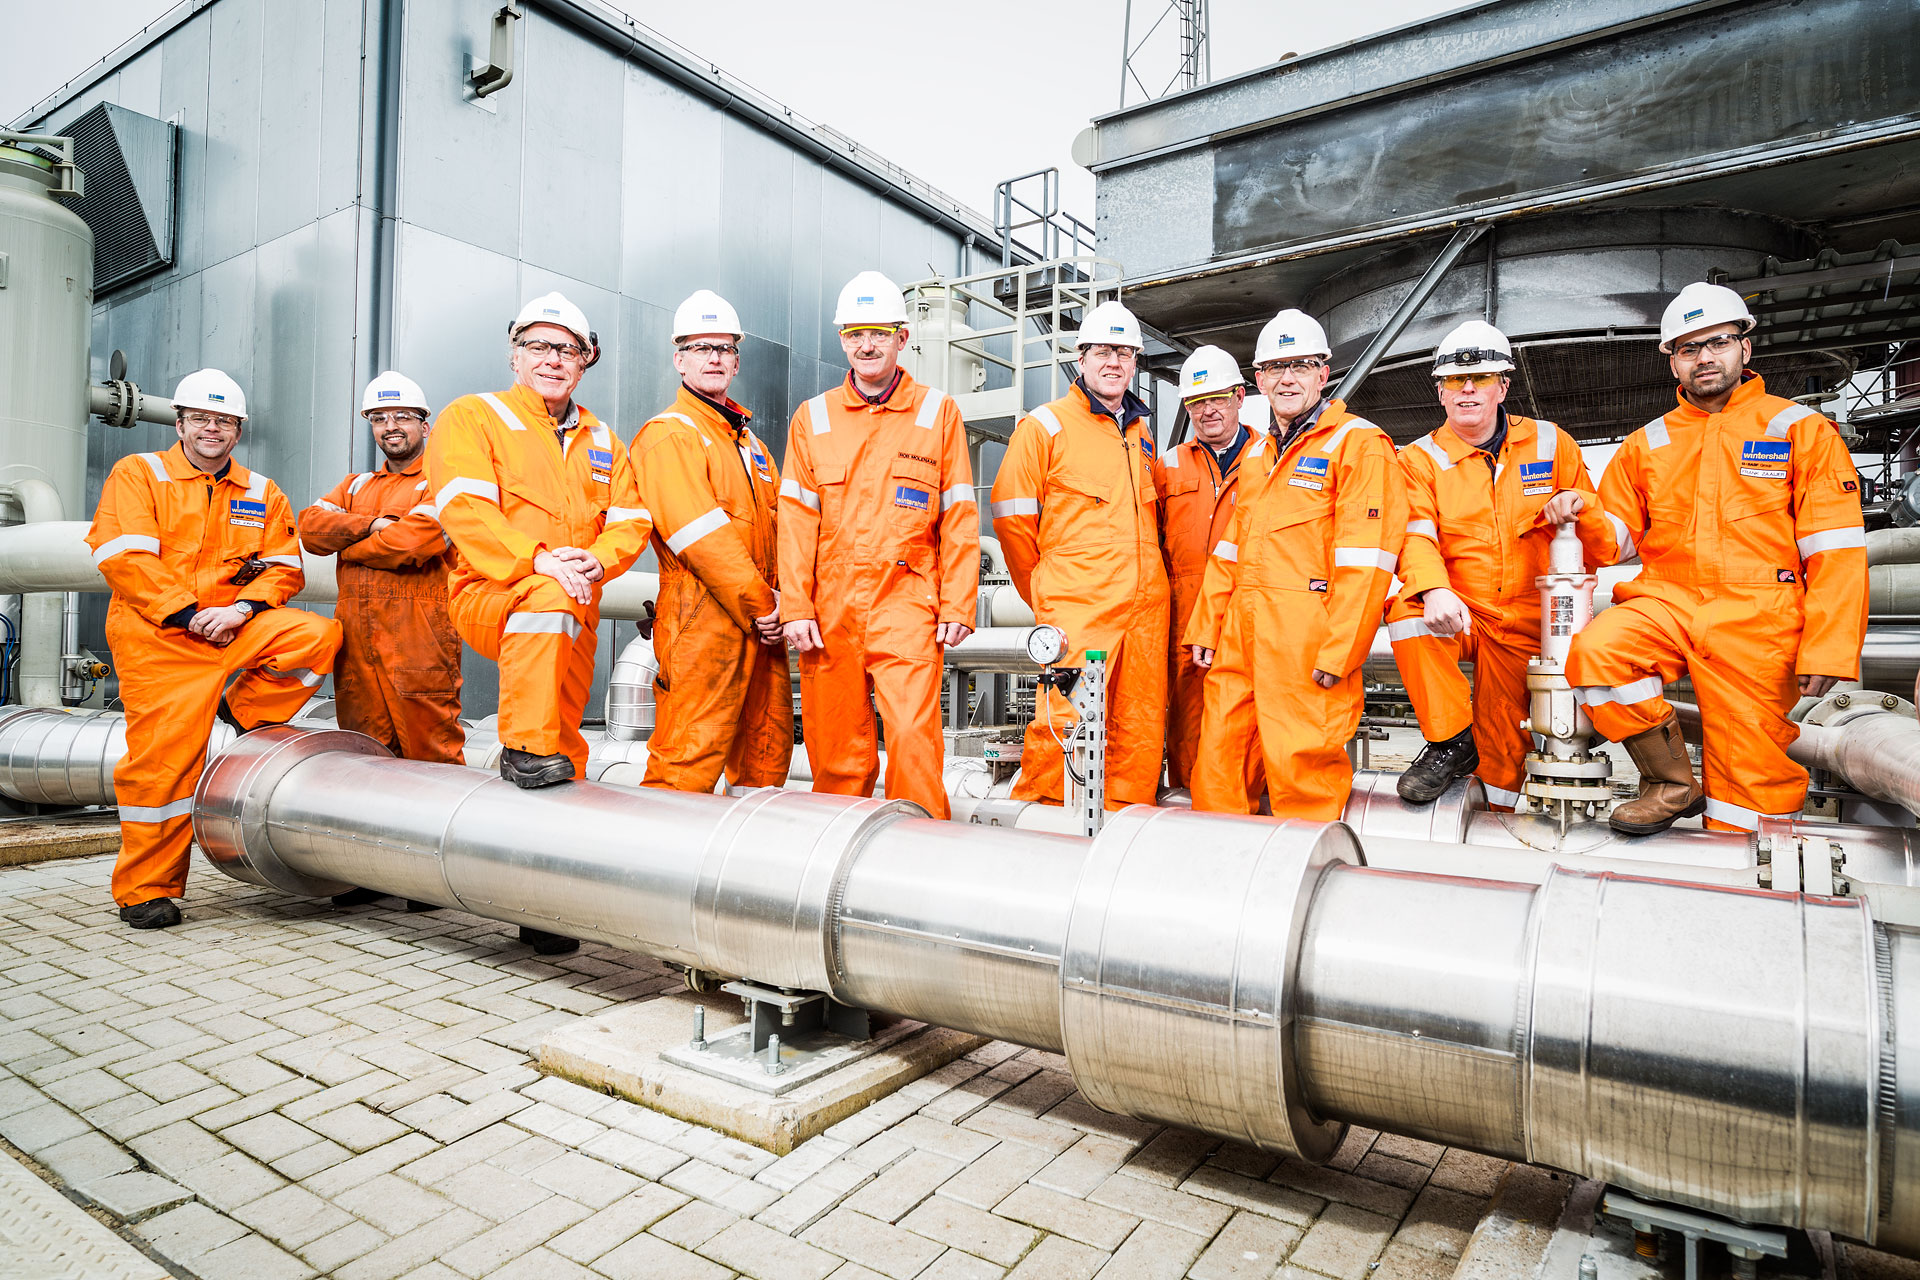 Wintershall Team, The Netherlands